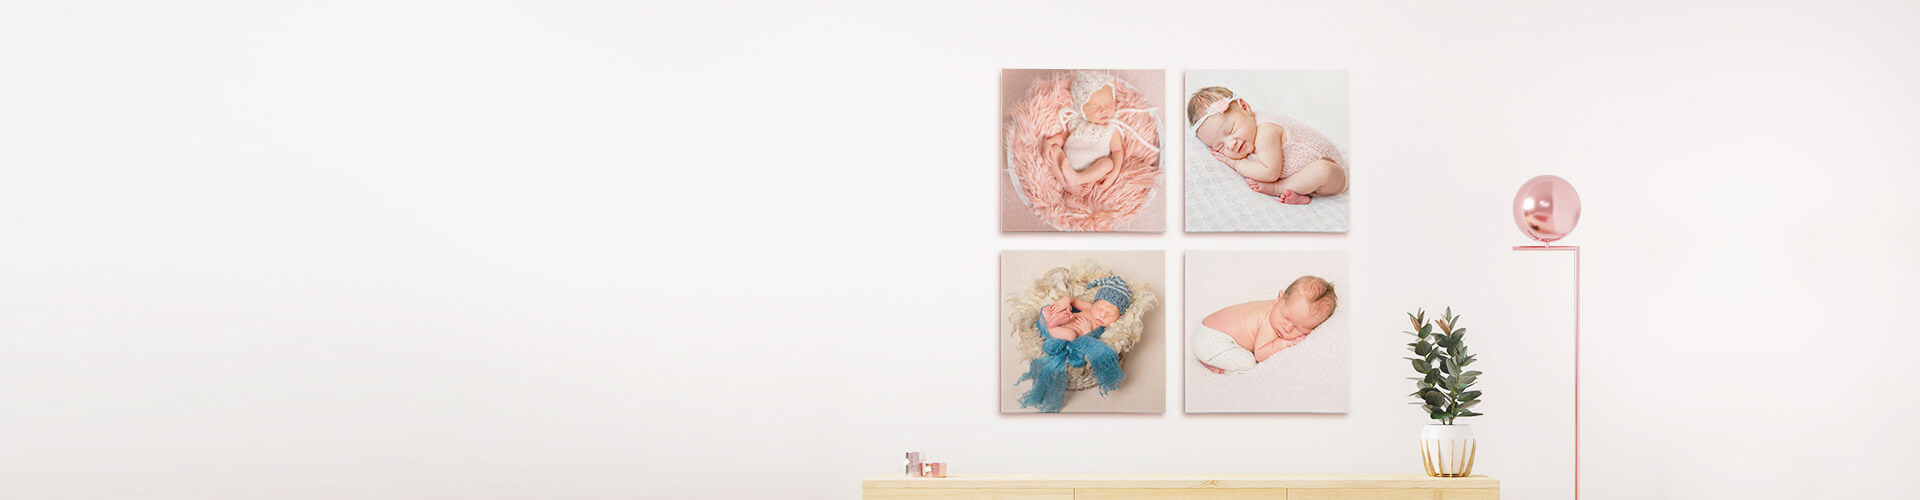 CanvasChamp Brings Easy Canvas Prints to Decorate Your Home